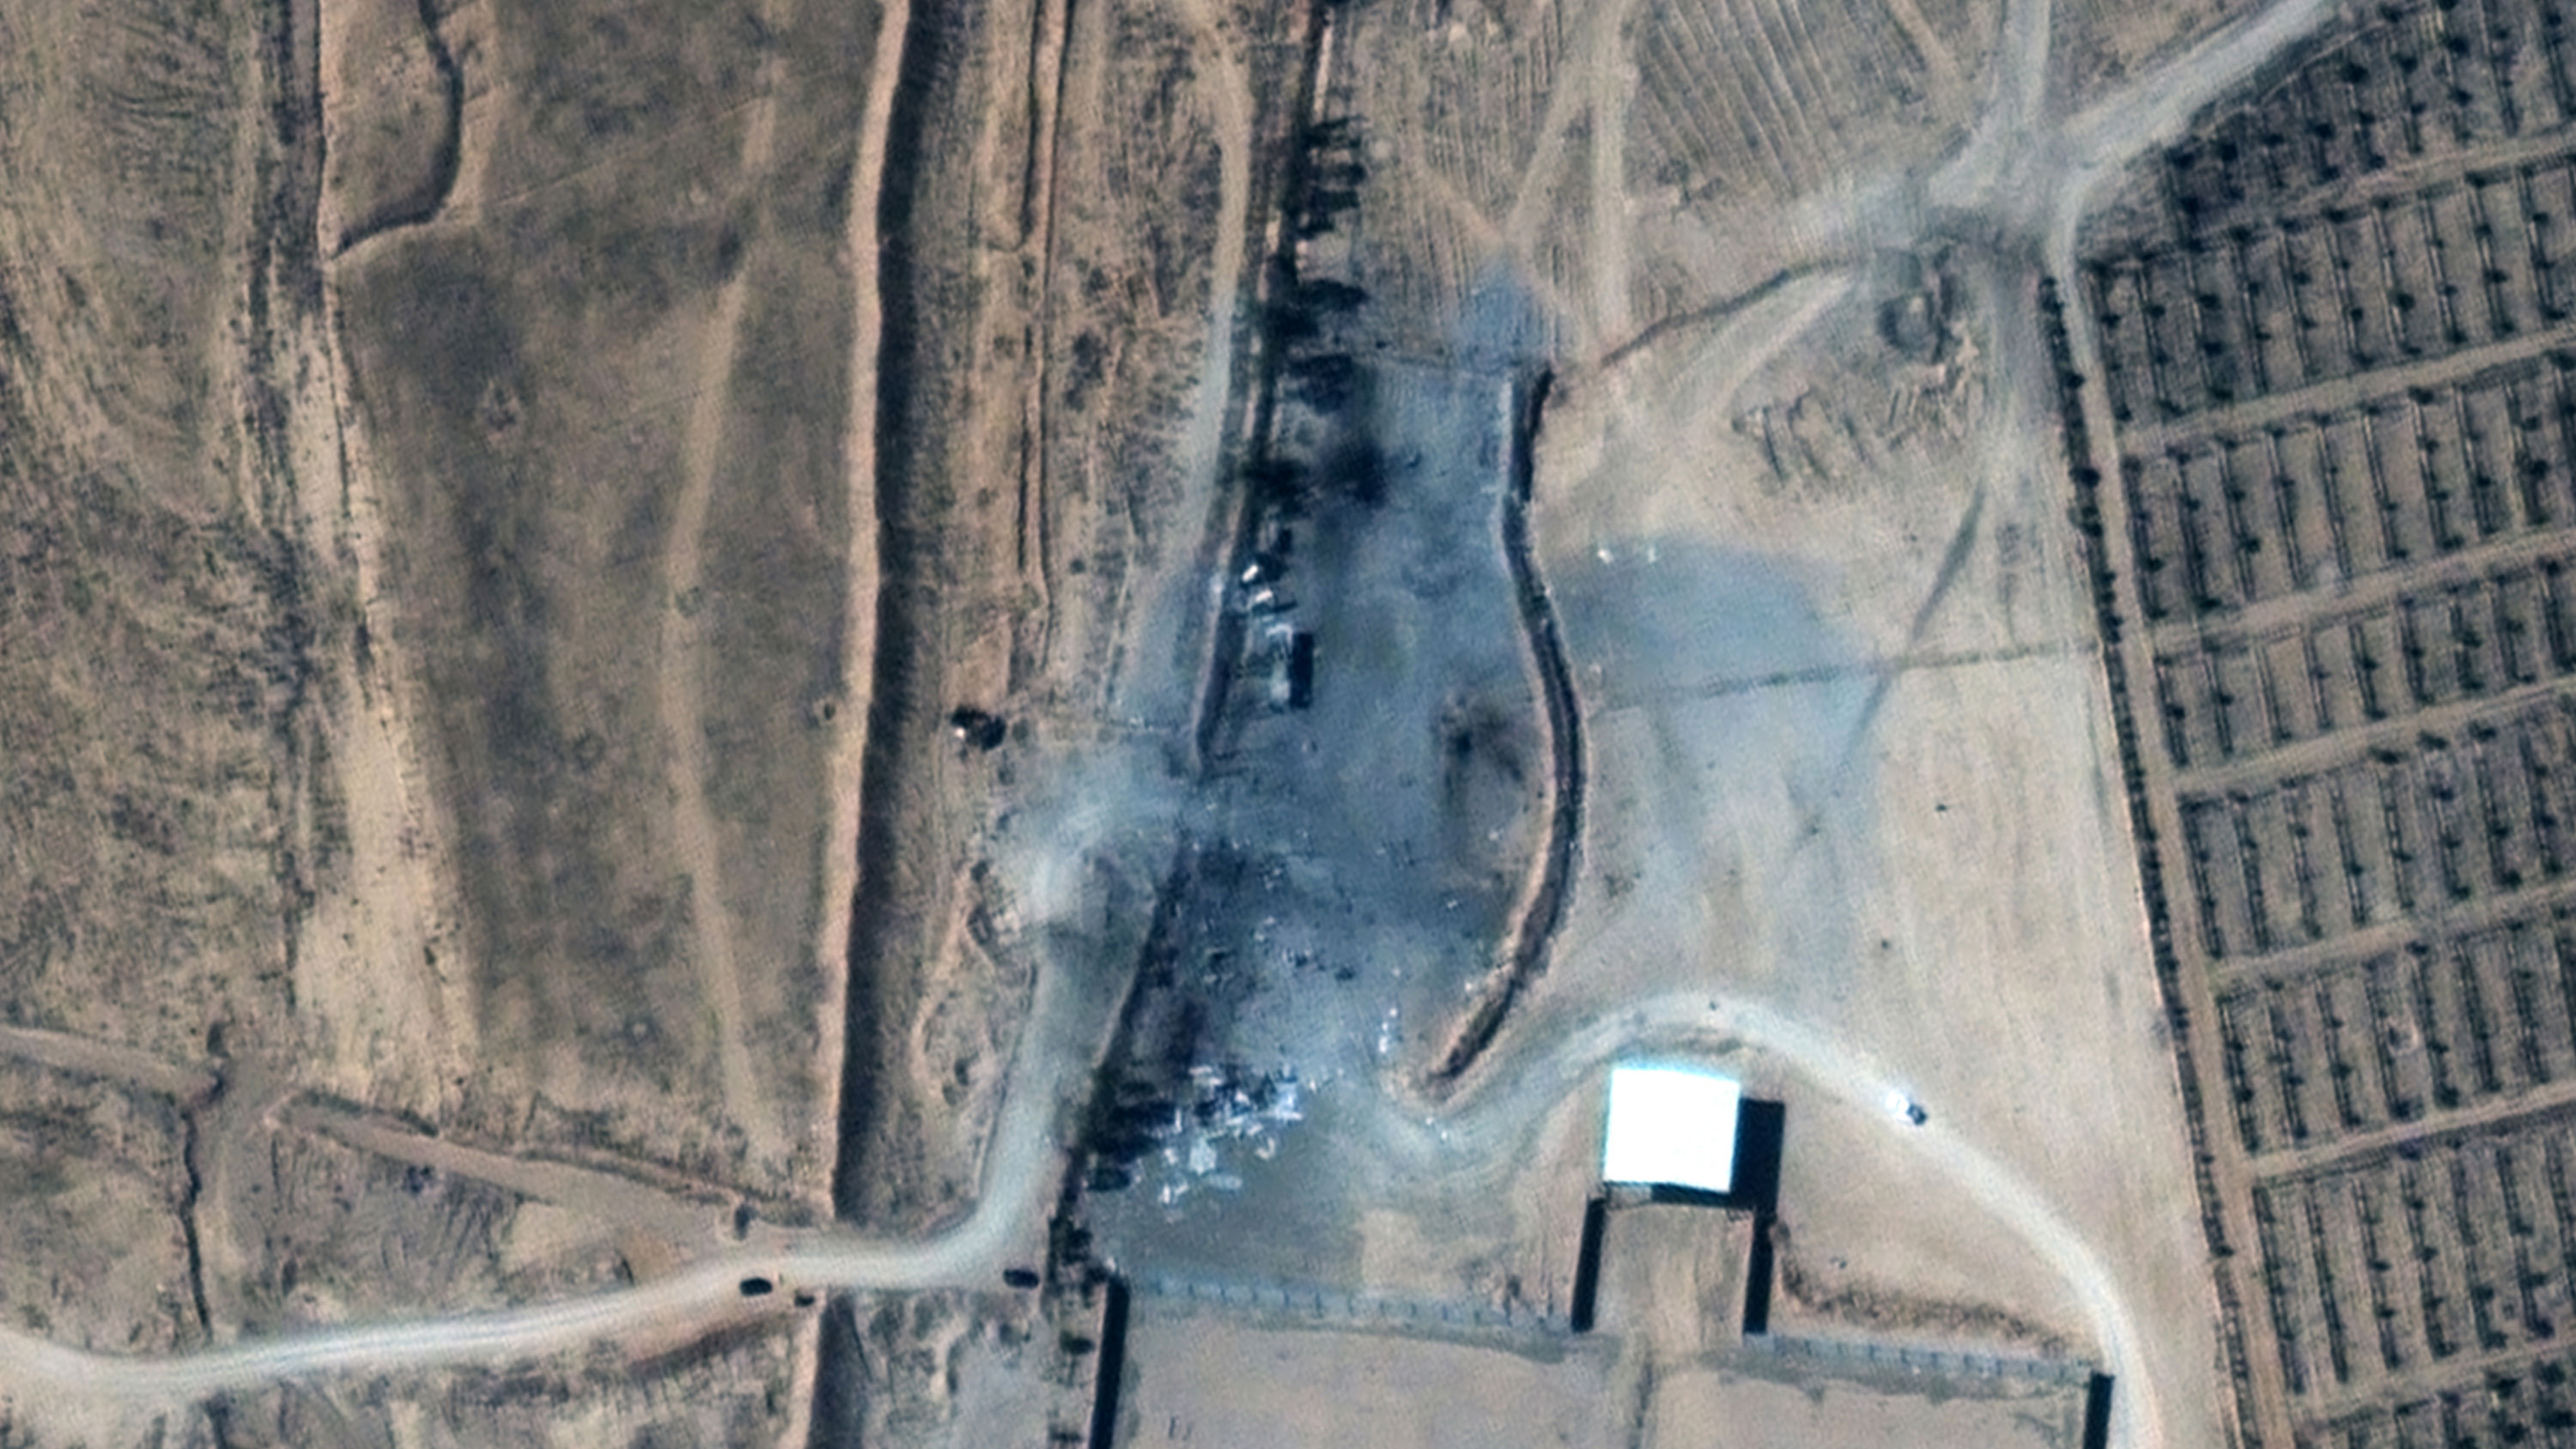 This satellite image after the deployment shows buildings destroyed.